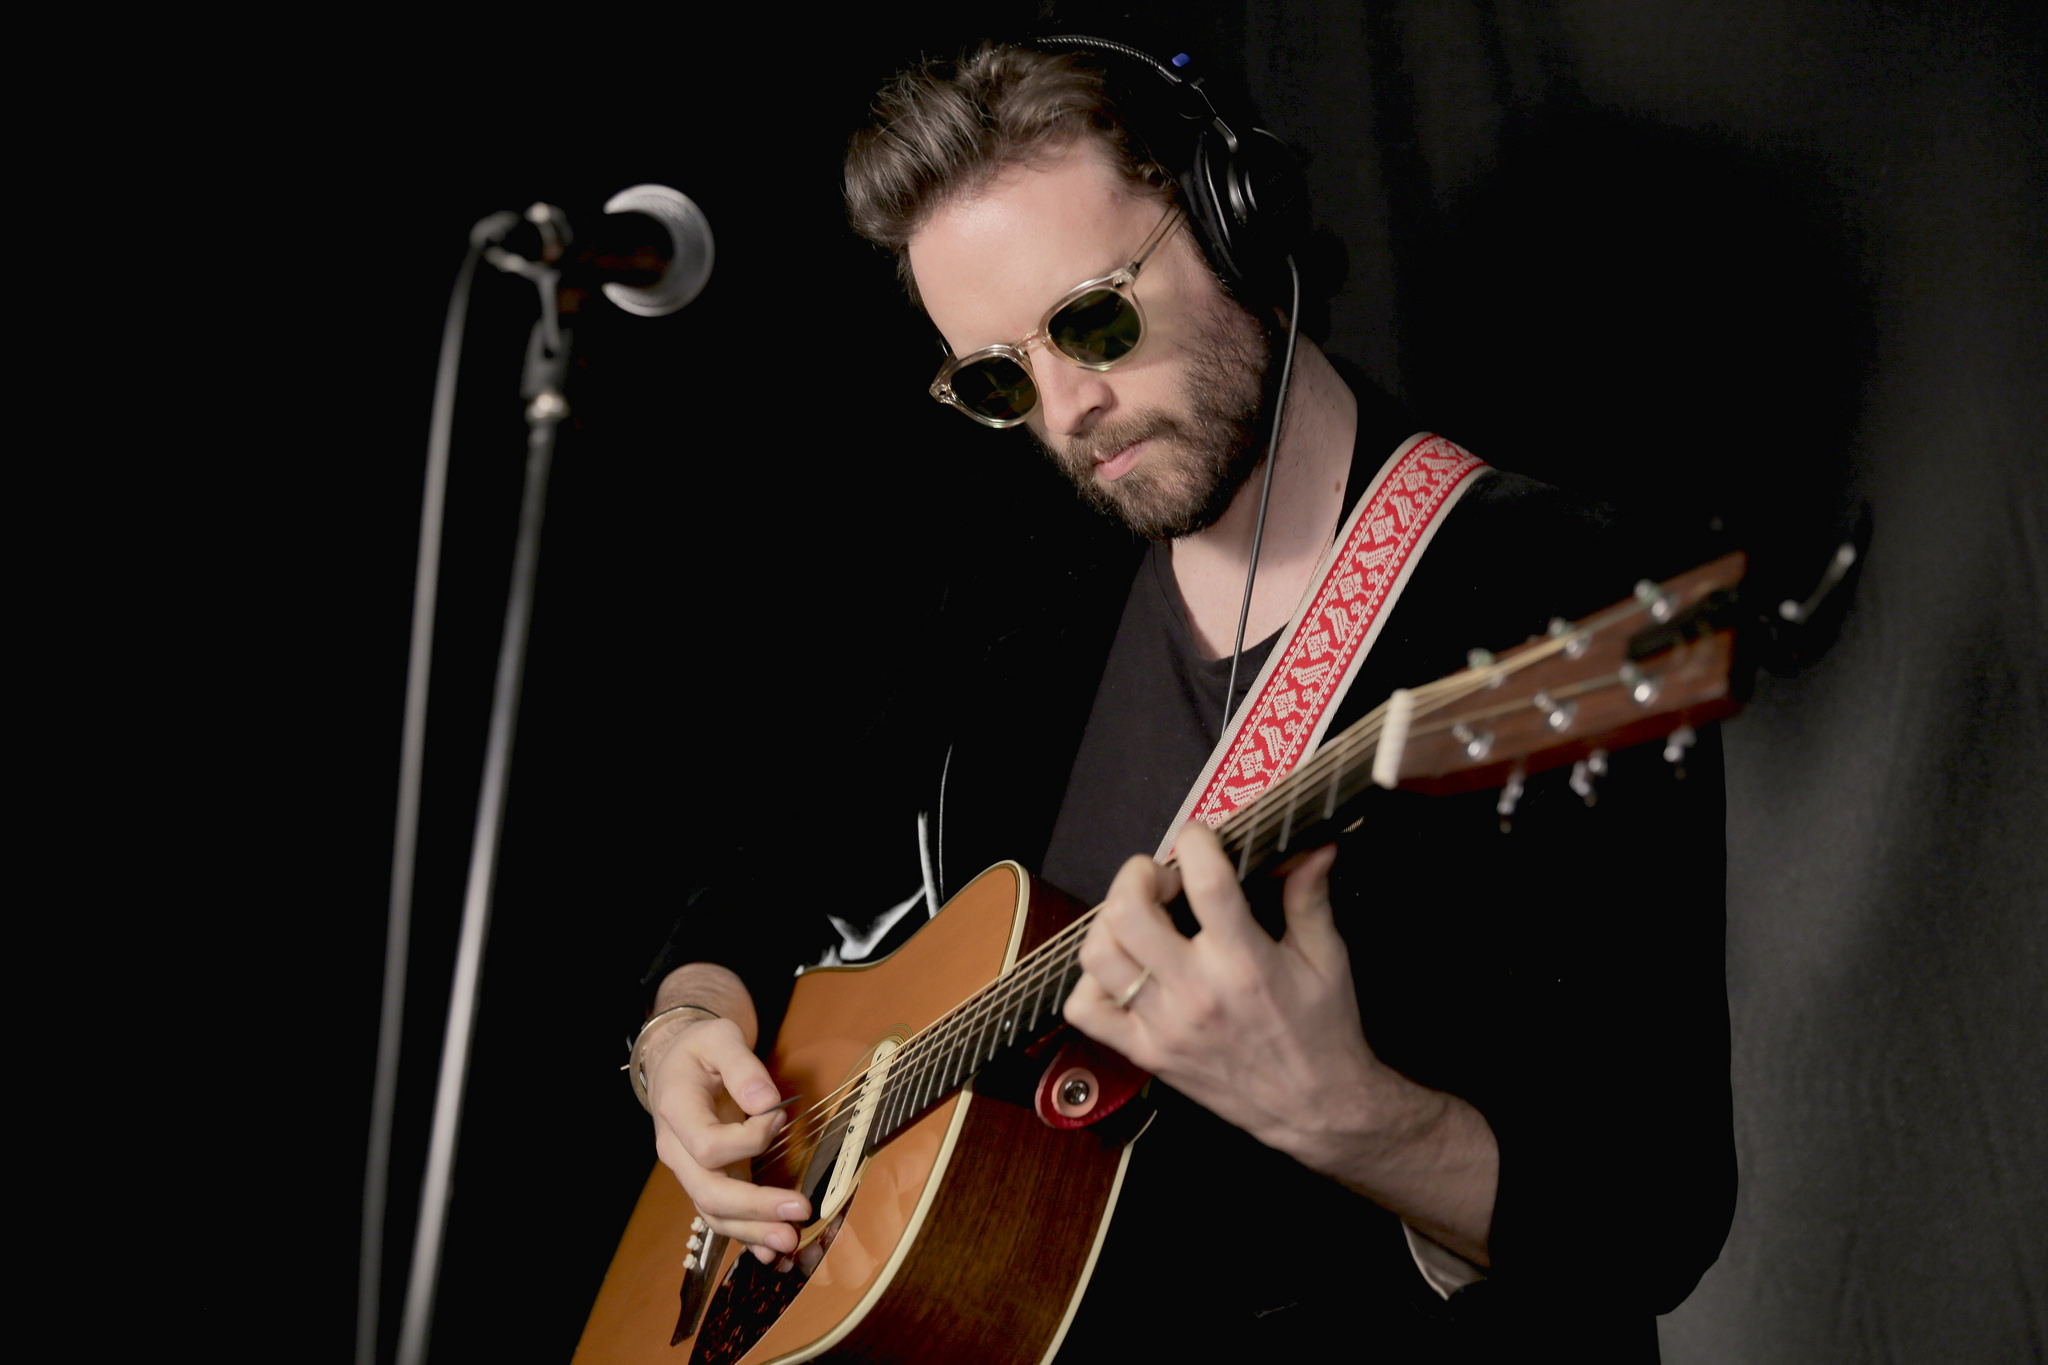 Hear an FUV Live session with Father John Misty tonight at 9.